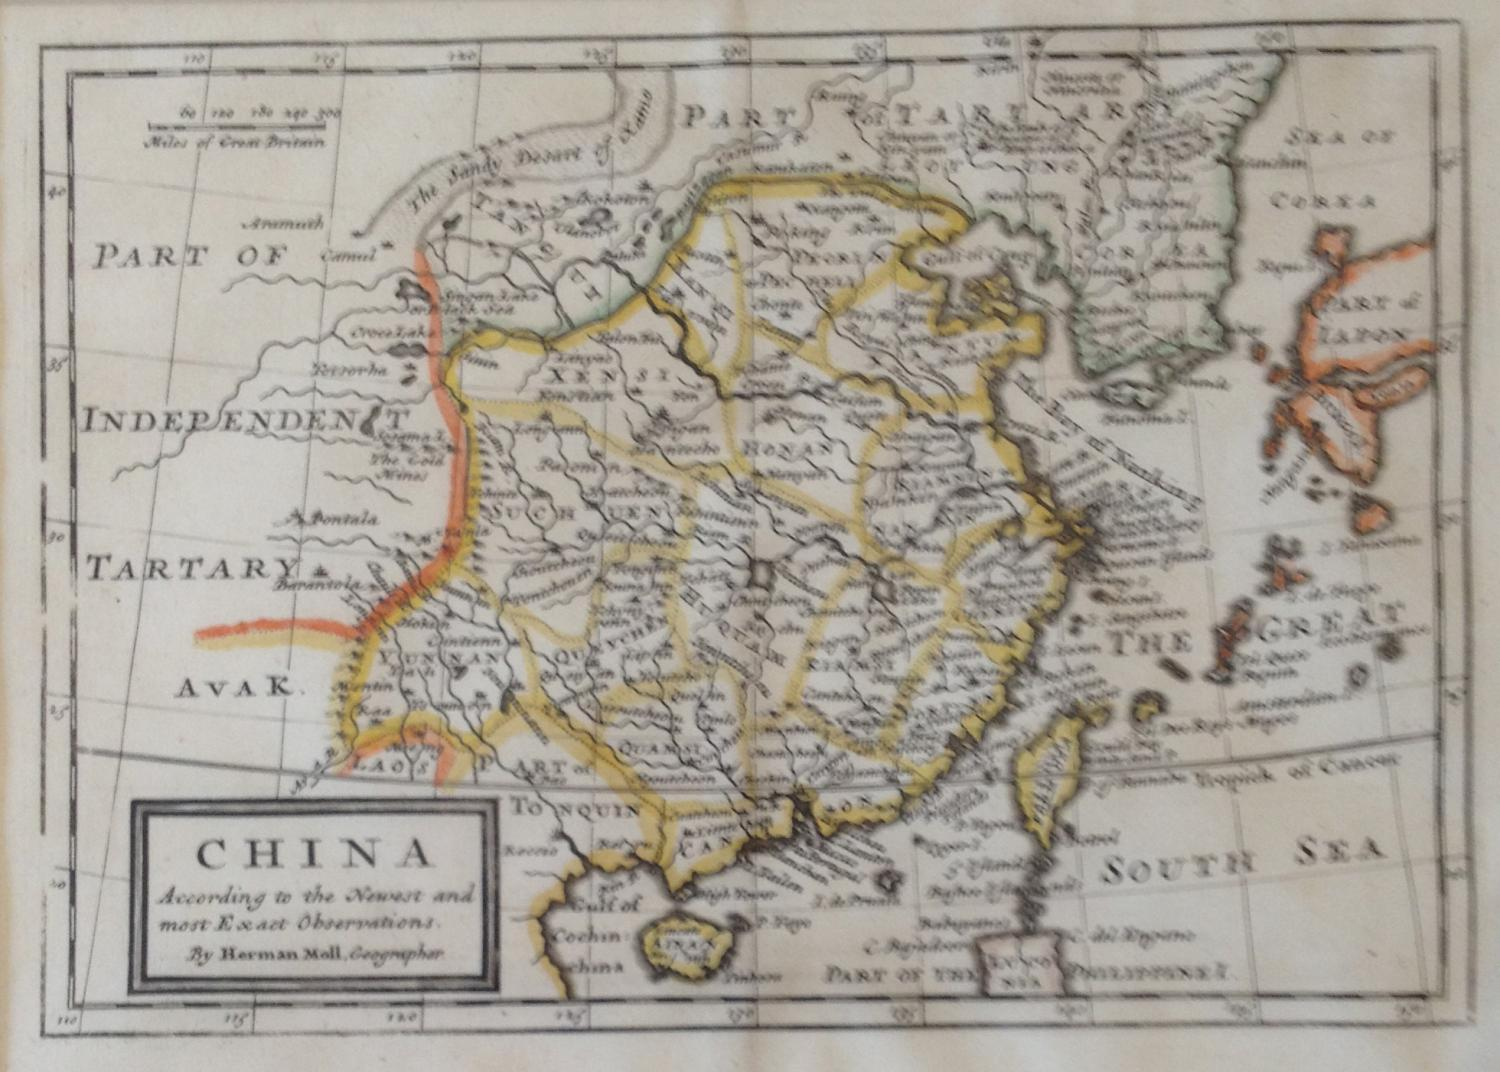 Moll - China According to the Newest ,, Obser